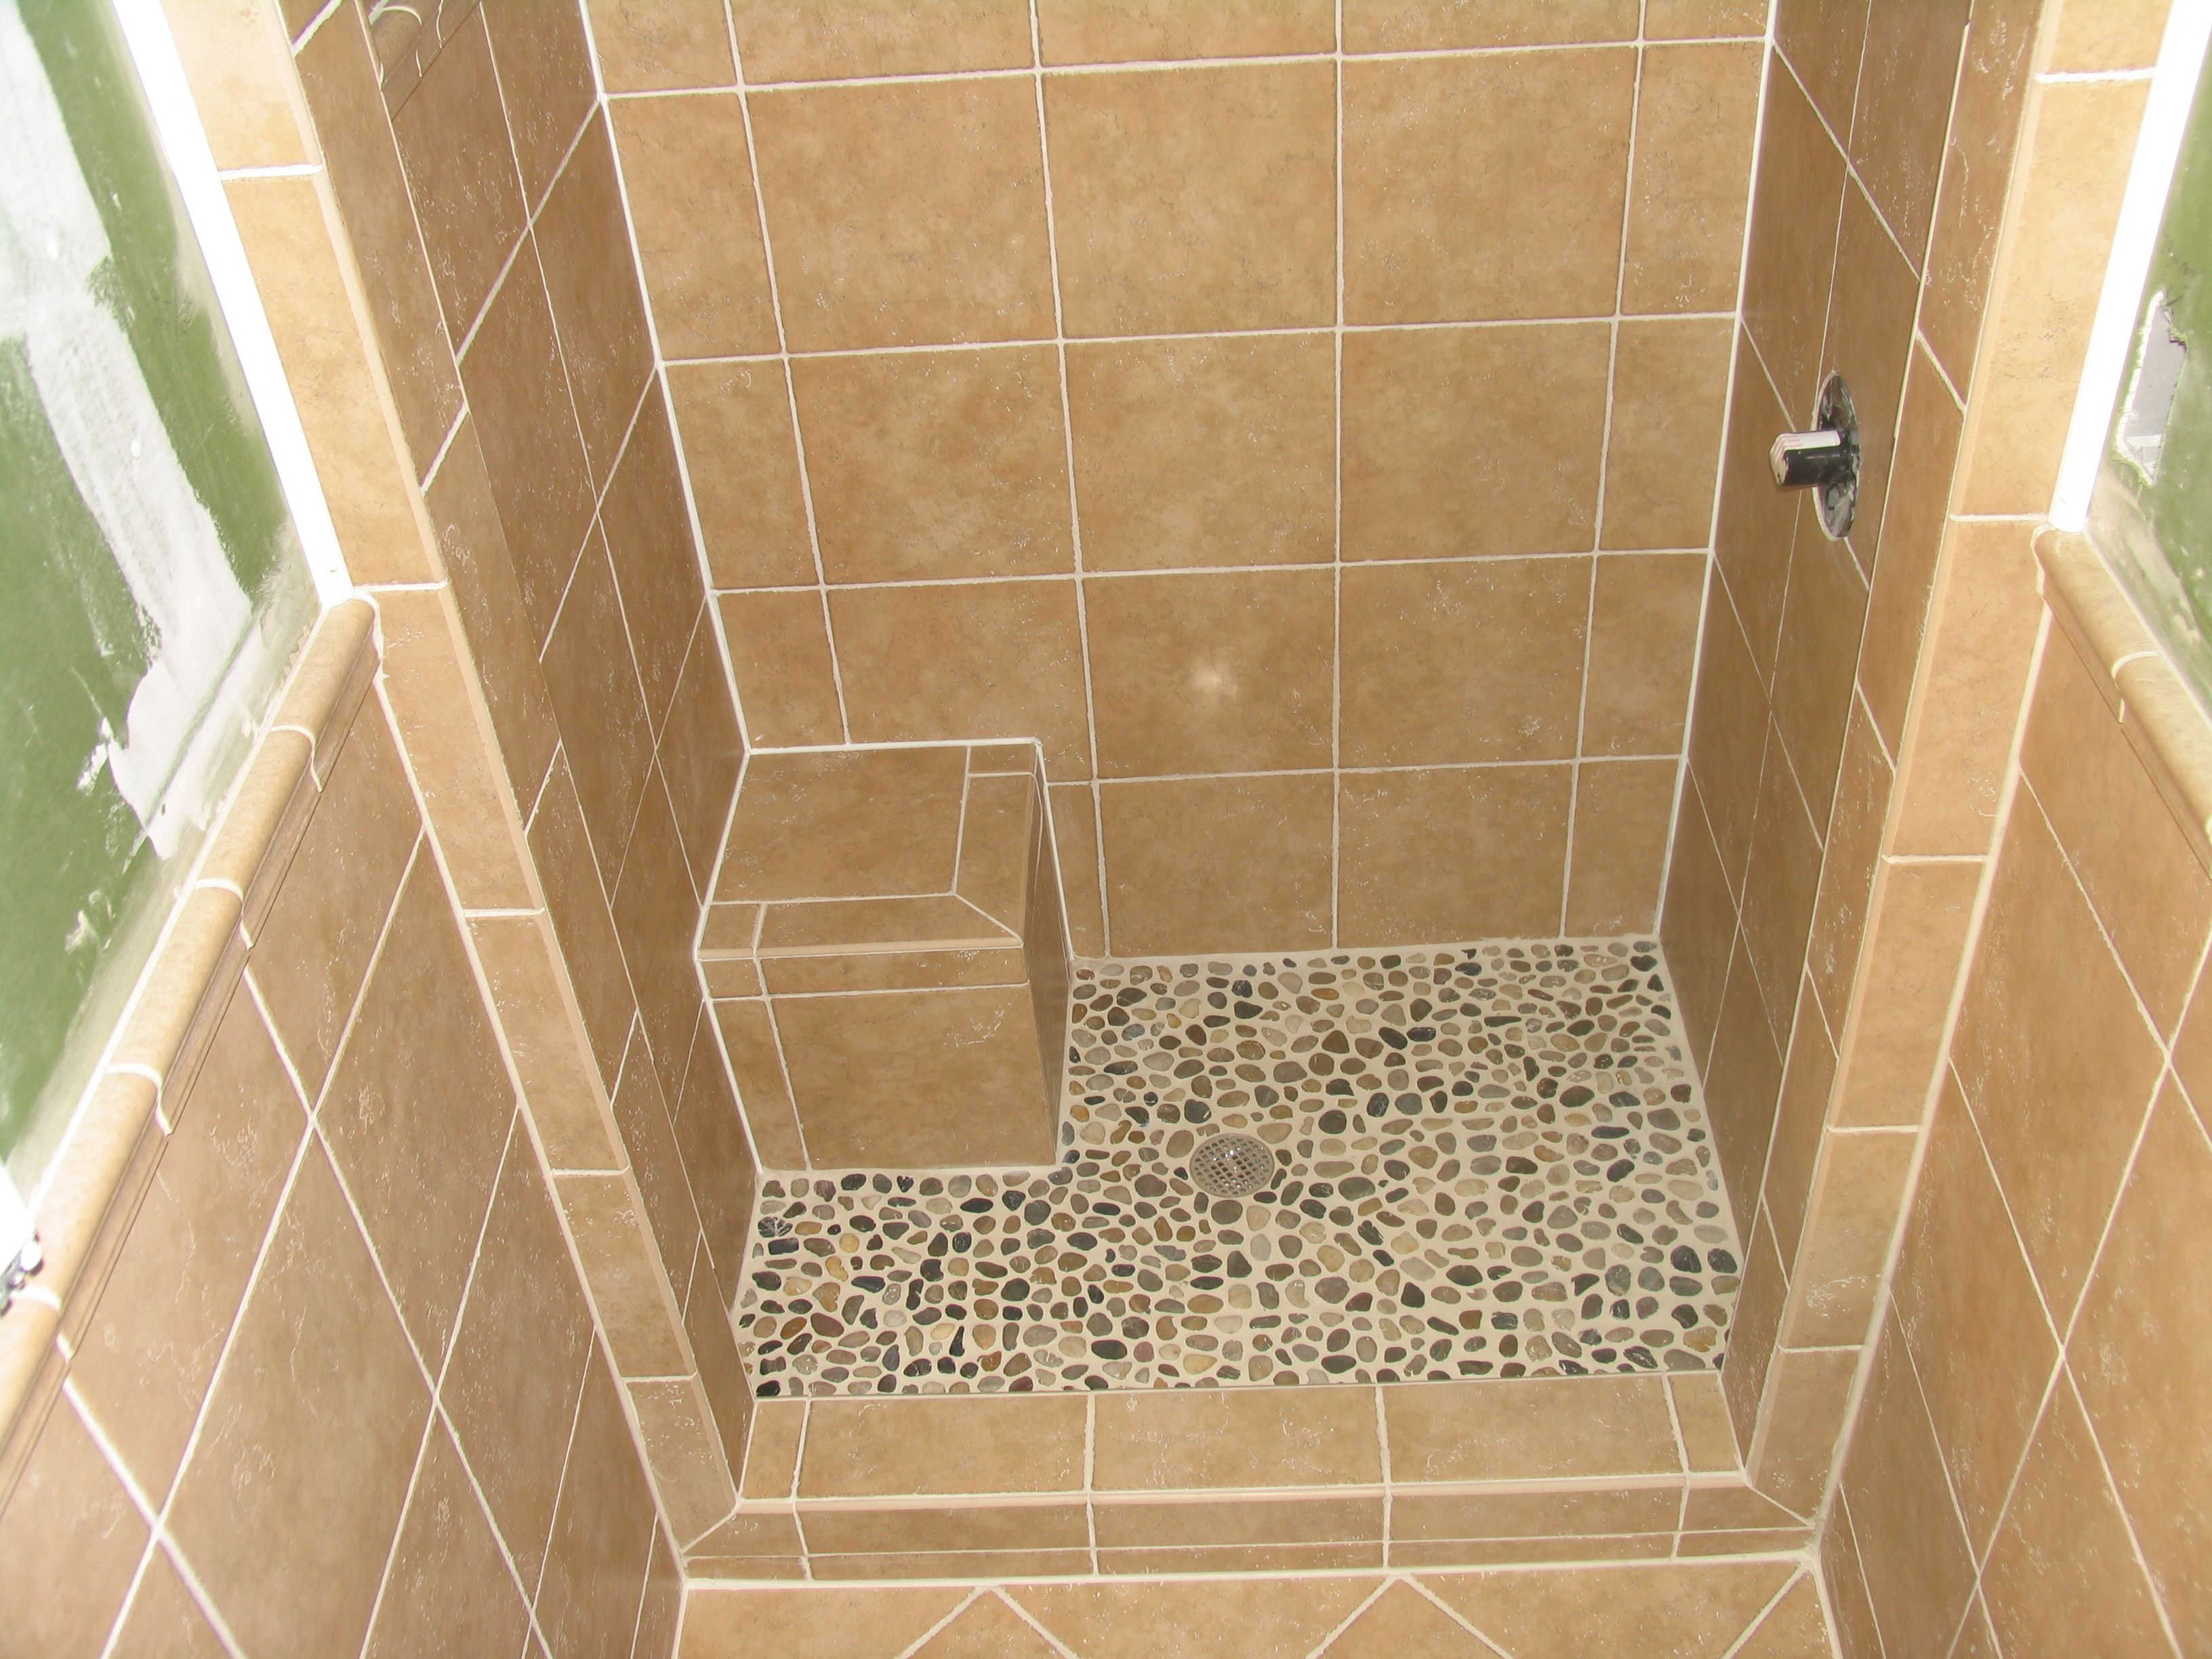 Stand Up Shower Tile Tile Work Pinterest Small Showers Tile Showers And Bath